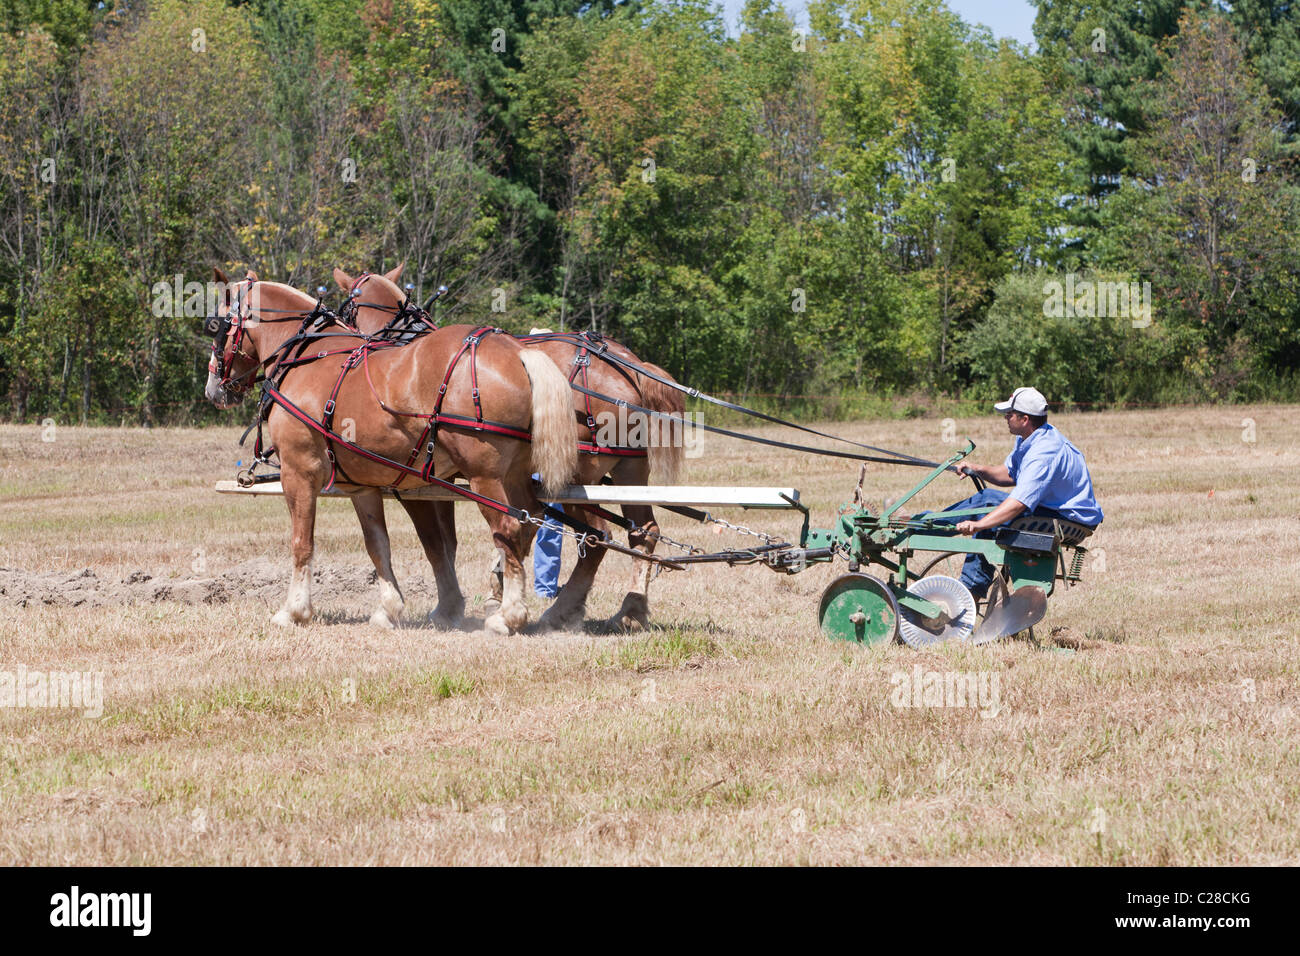 Draft horses plowing a field. - Stock Image